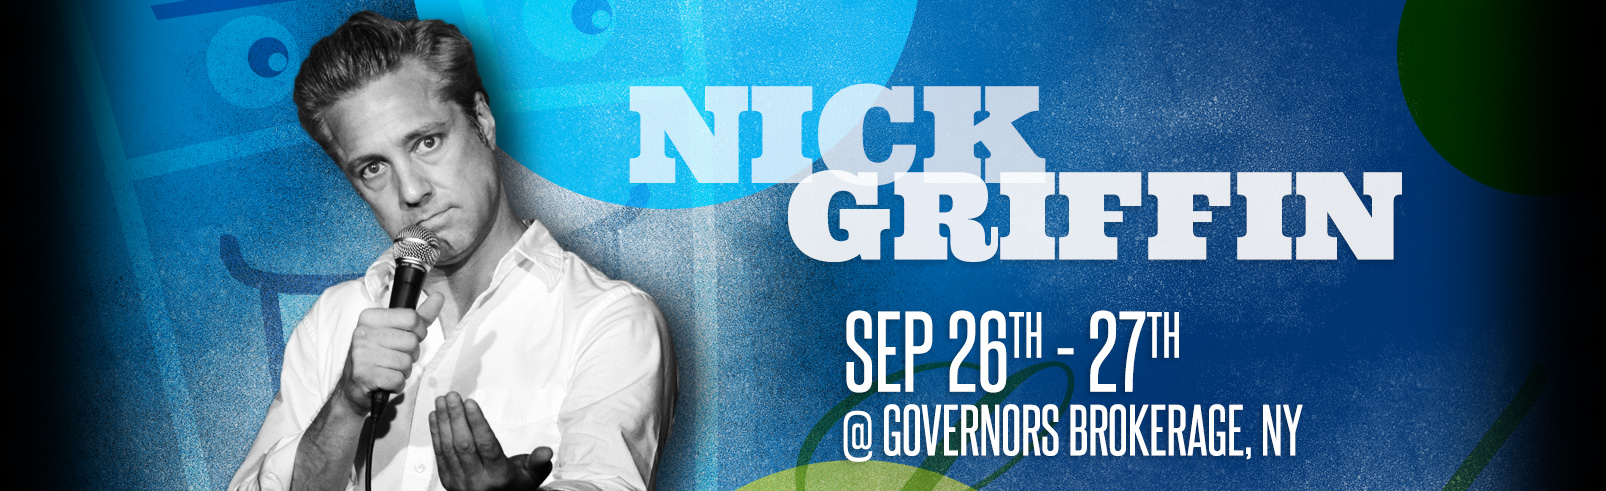 Nick Griffin @ Governors Brokerage